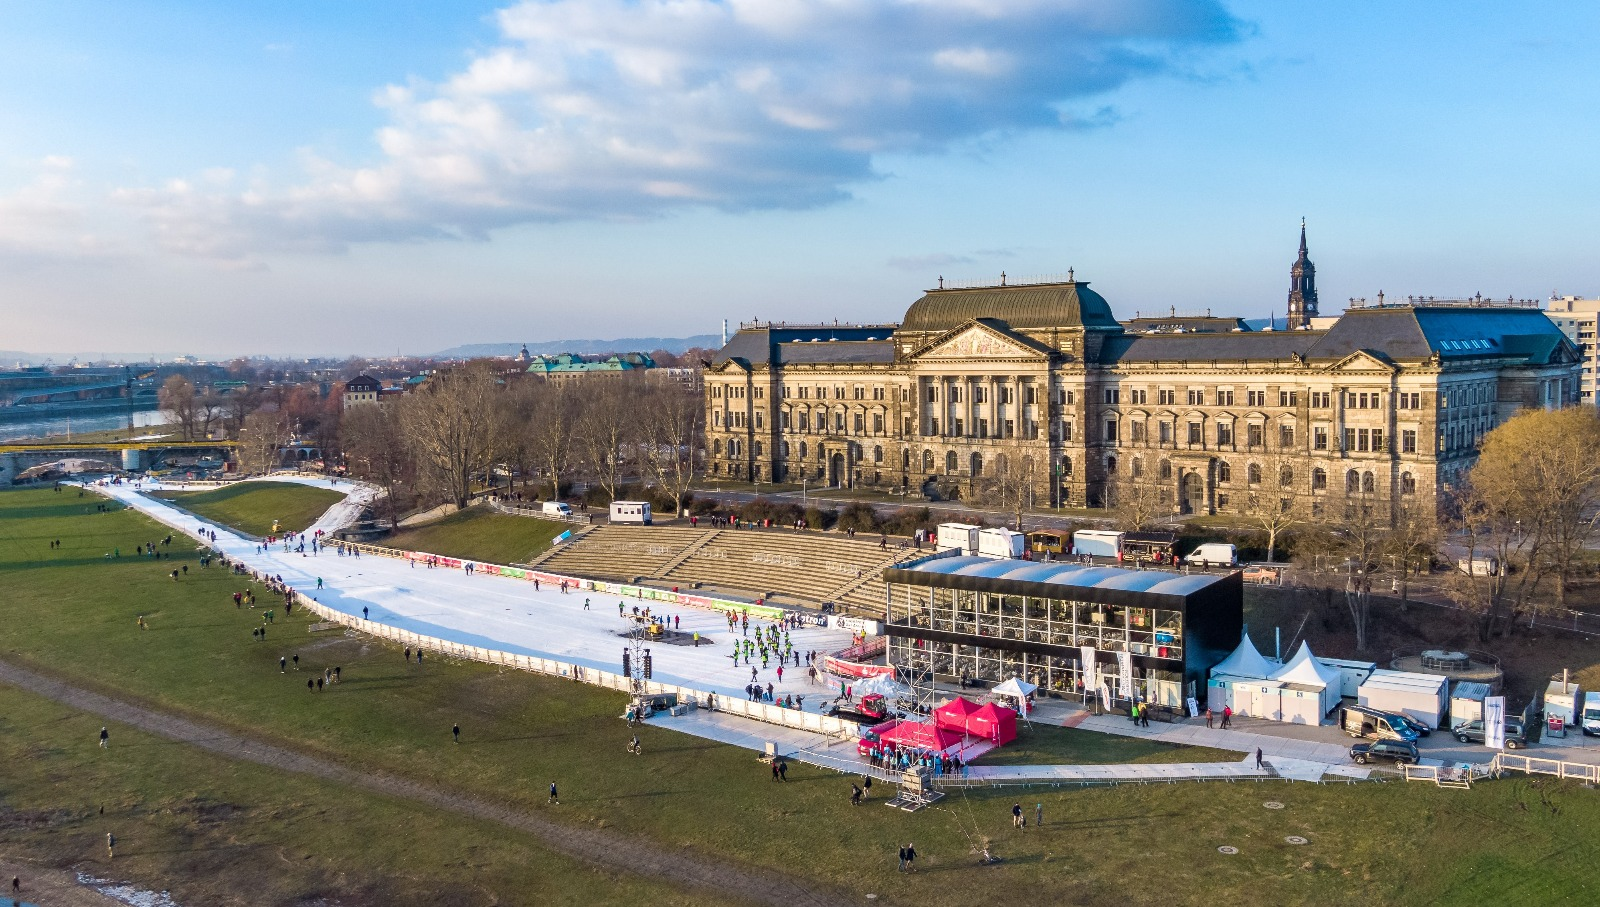 Aerial view of the race course in front of the State of Saxony's Ministry of Culture building.